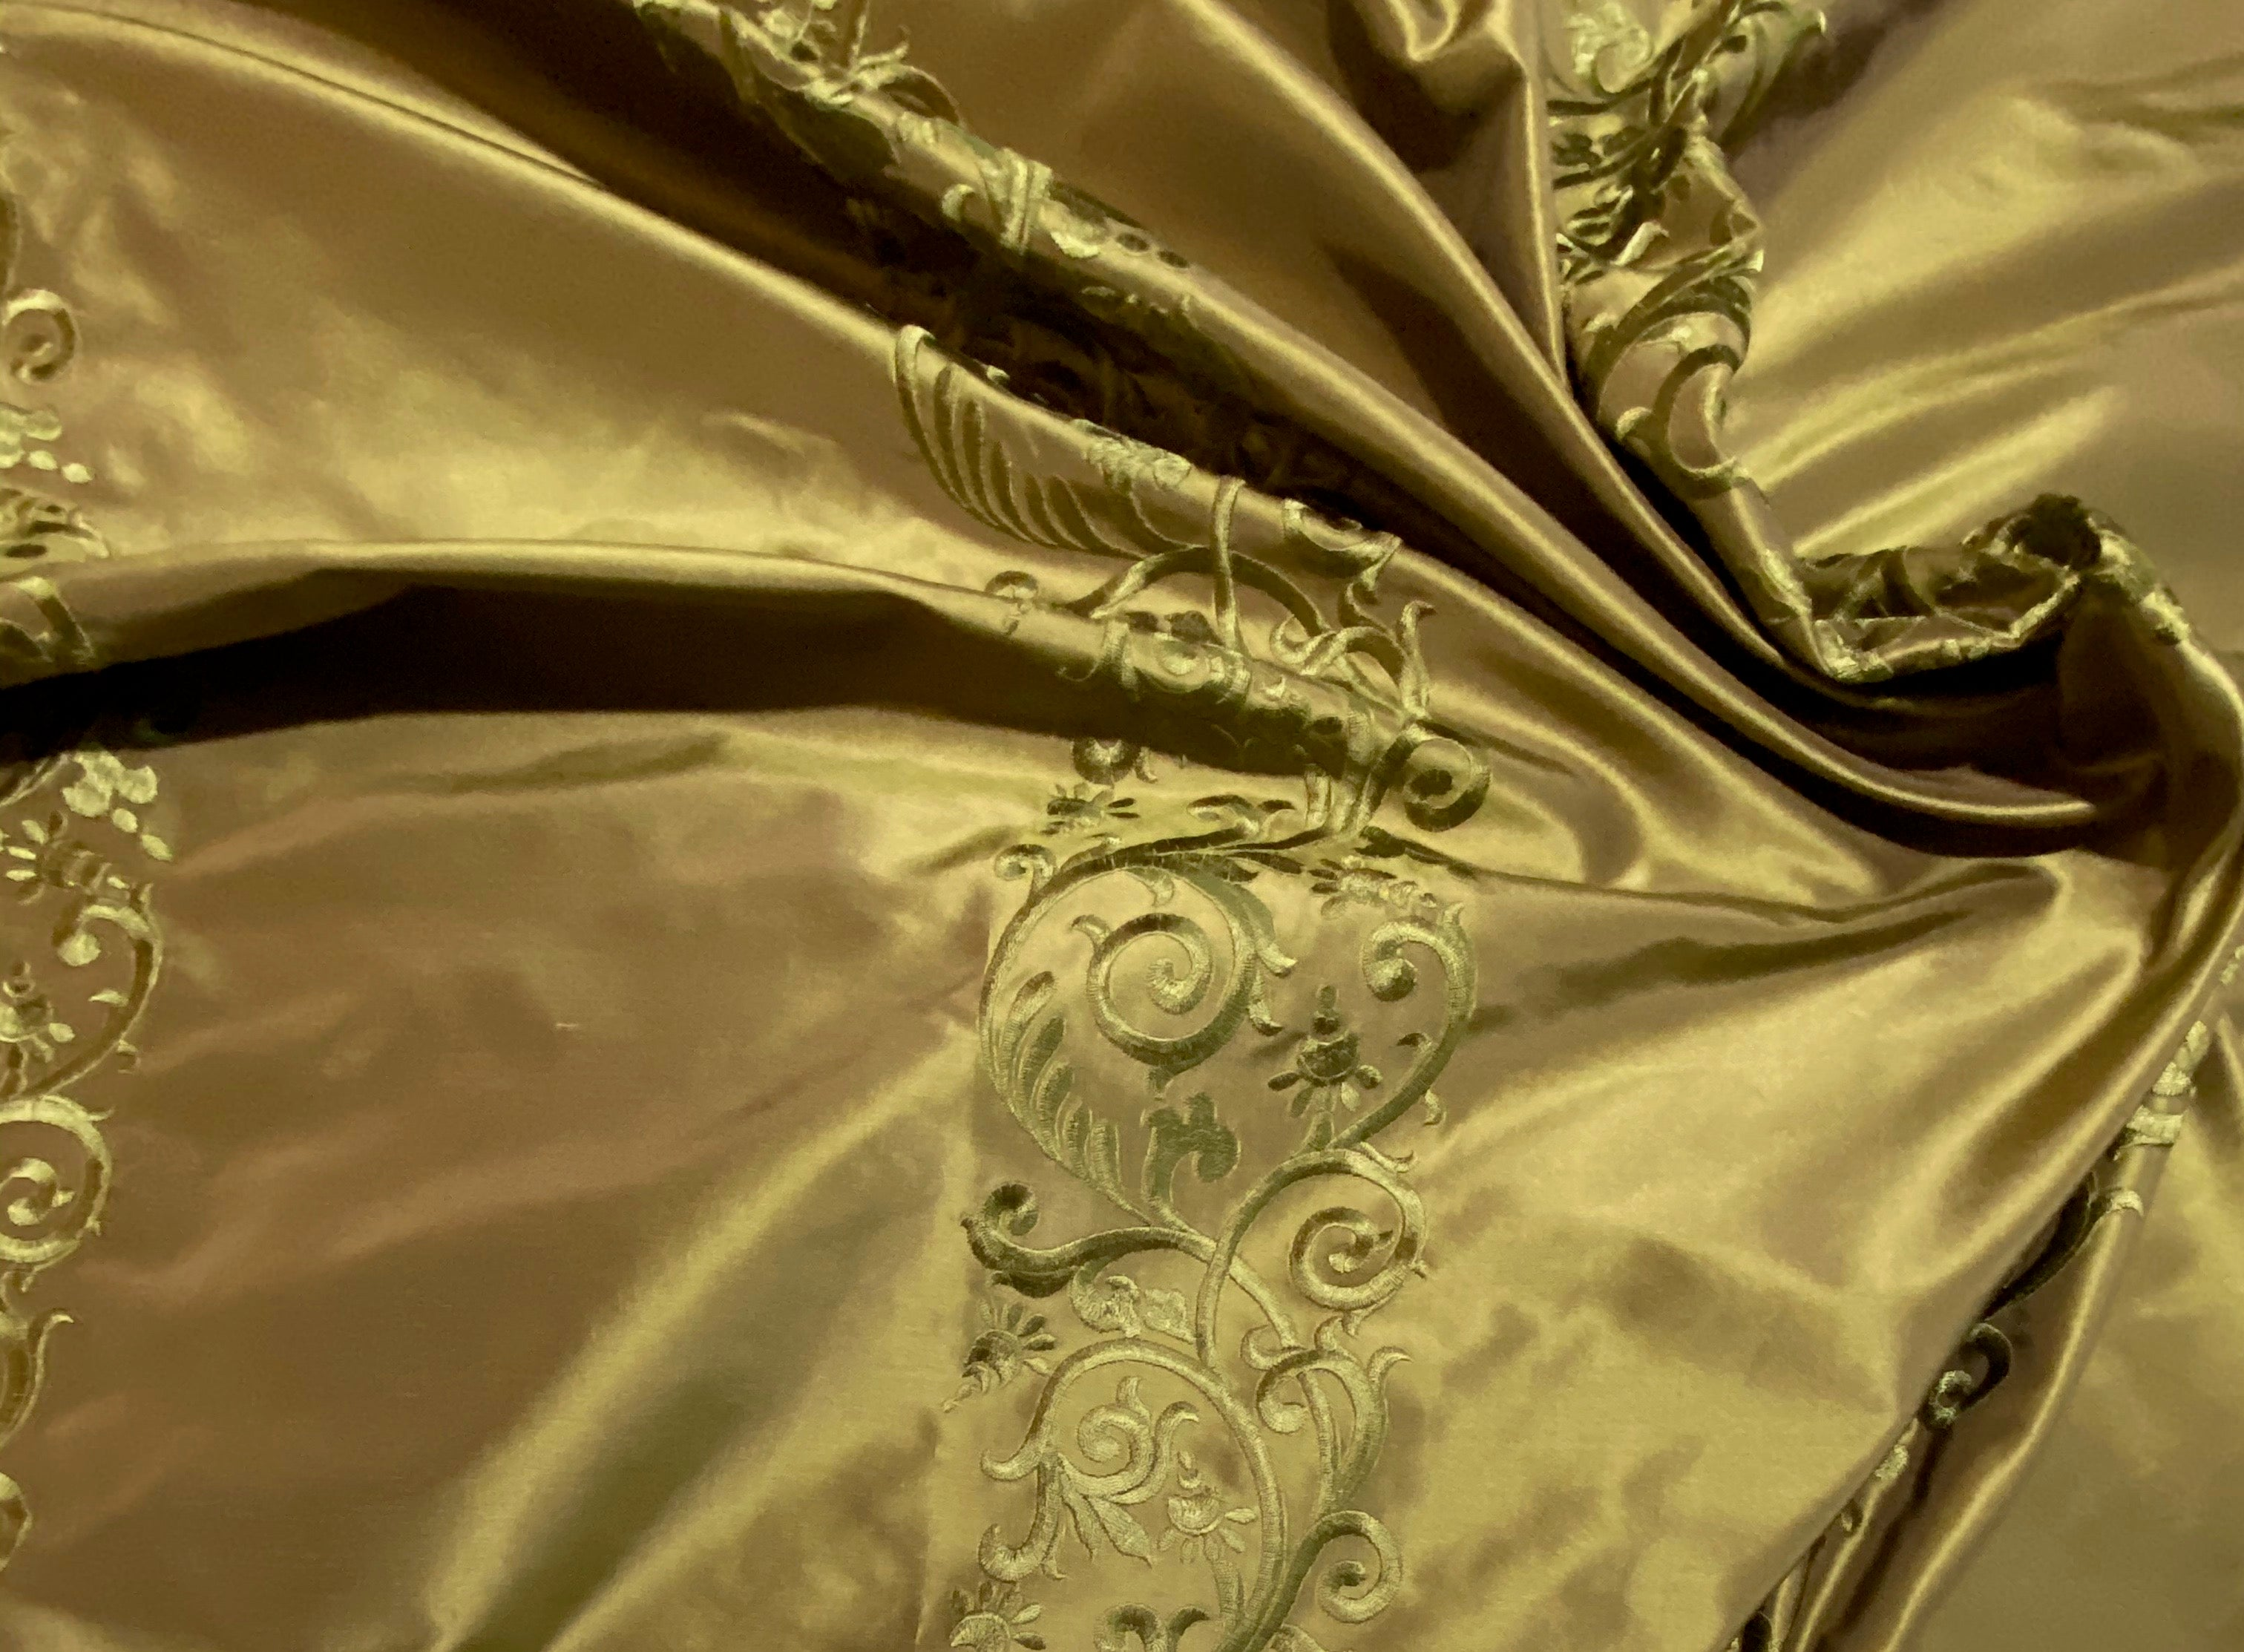 NEW 100% Silk Taffeta Embroidered Fabric - Khaki Gold & Pink Highlights